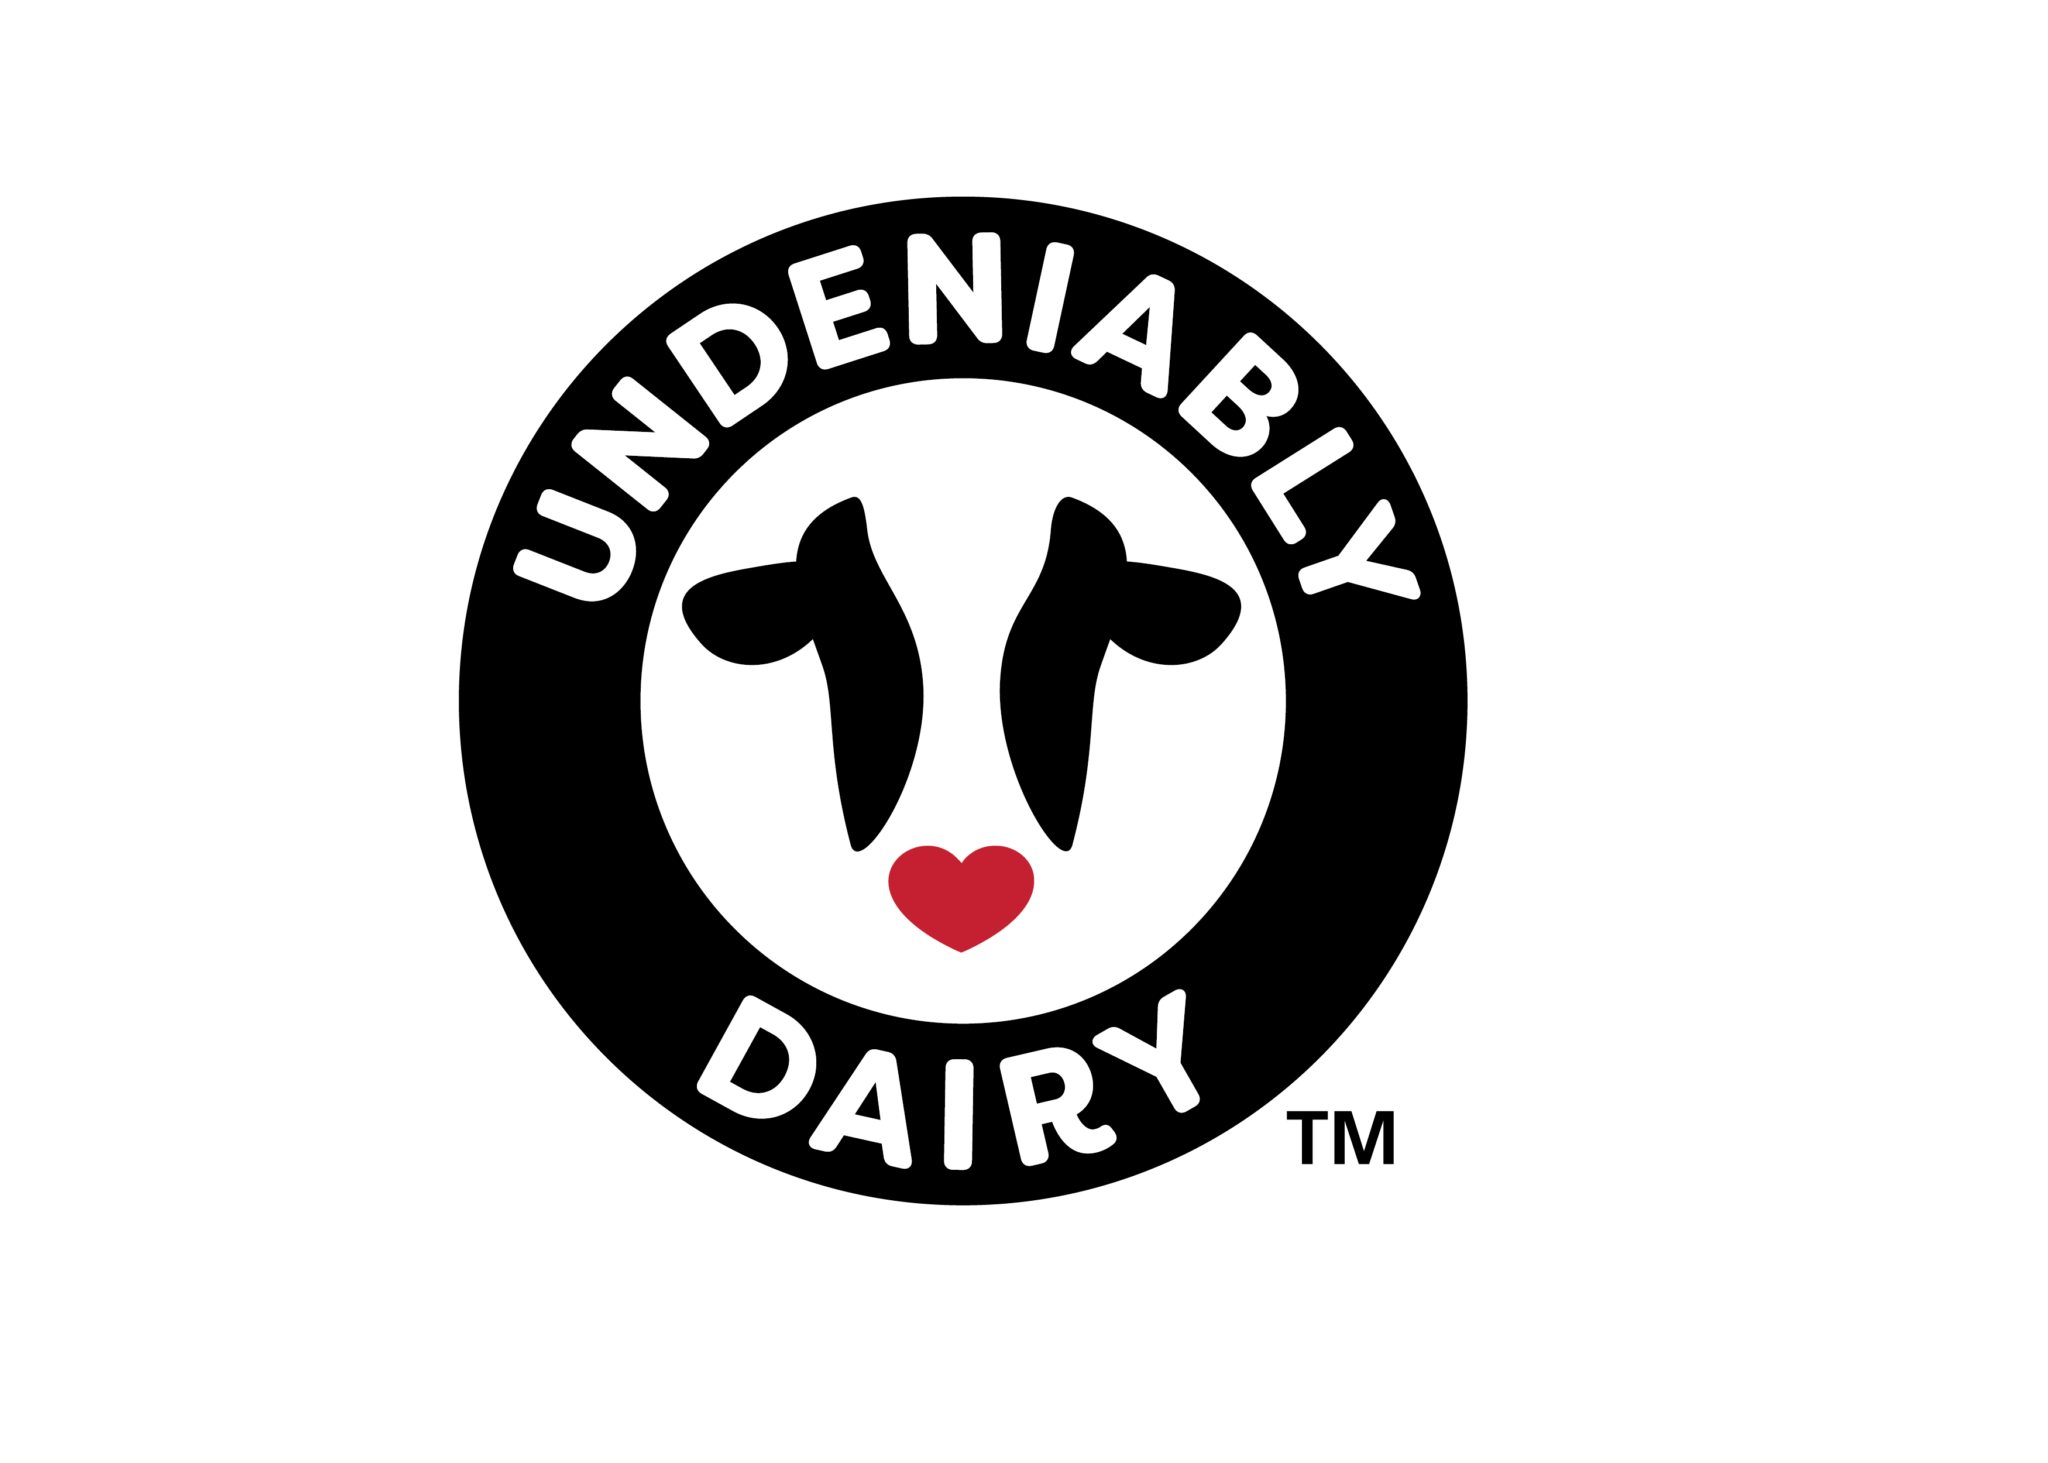 Innovation Center for U.S. Dairy Announces Food Safety